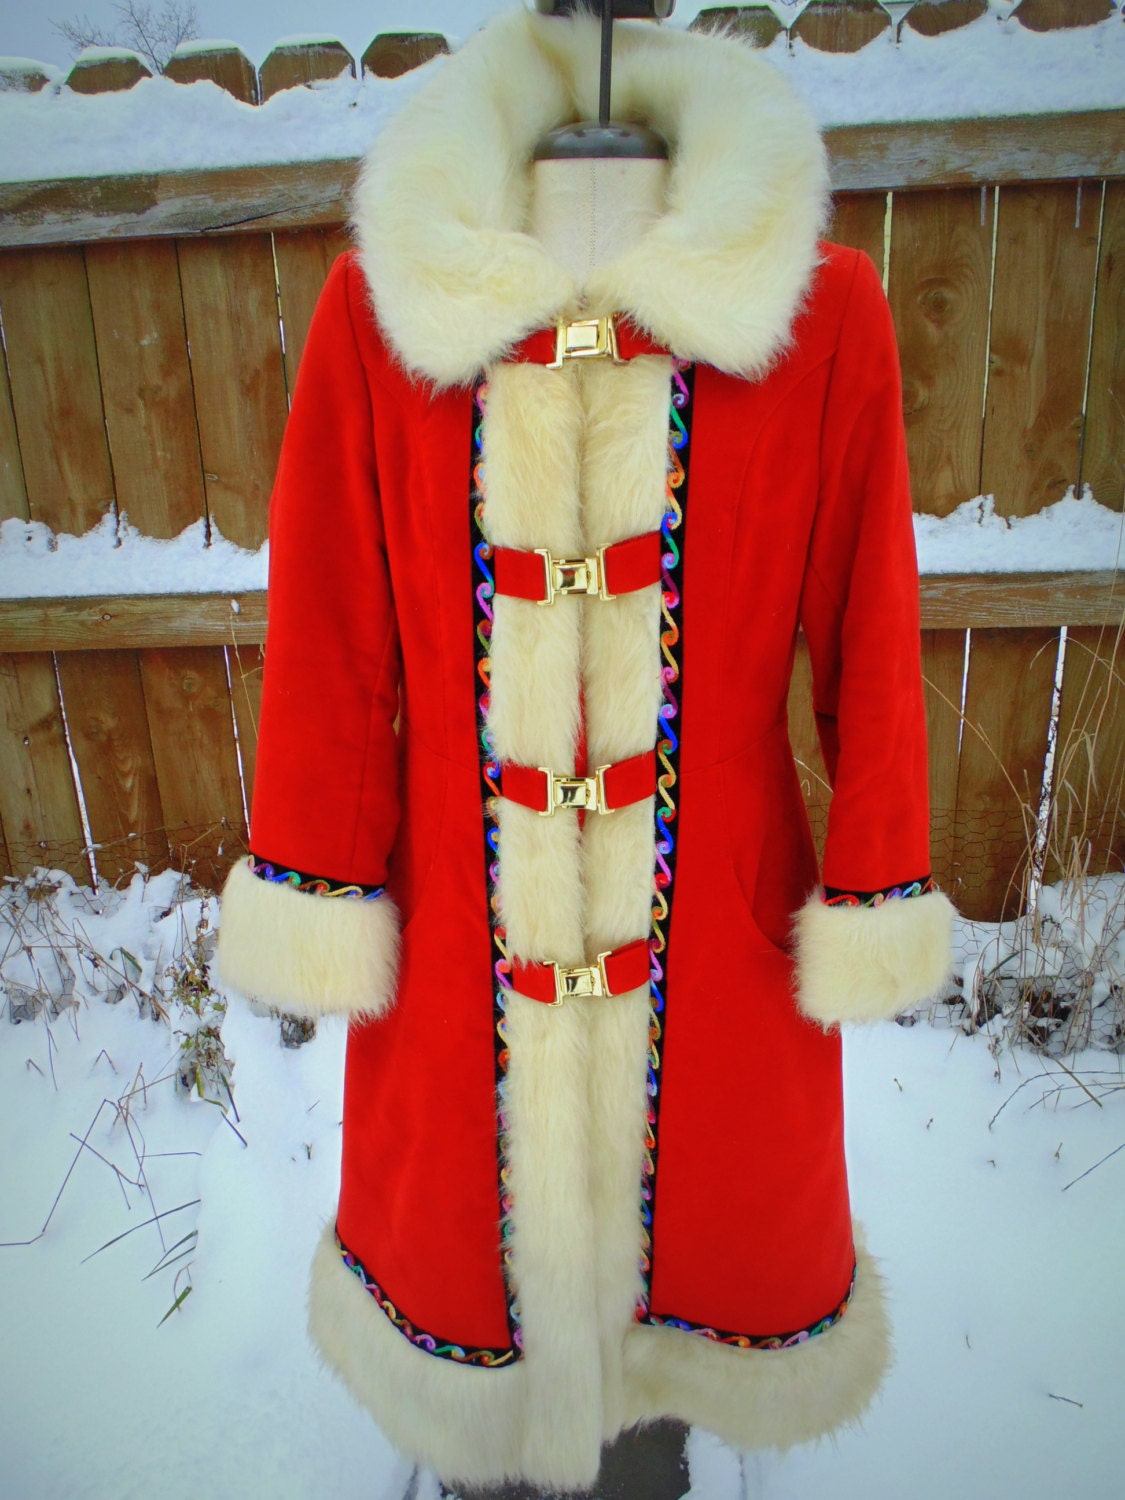 1970s long vintage red coat with white fur trim